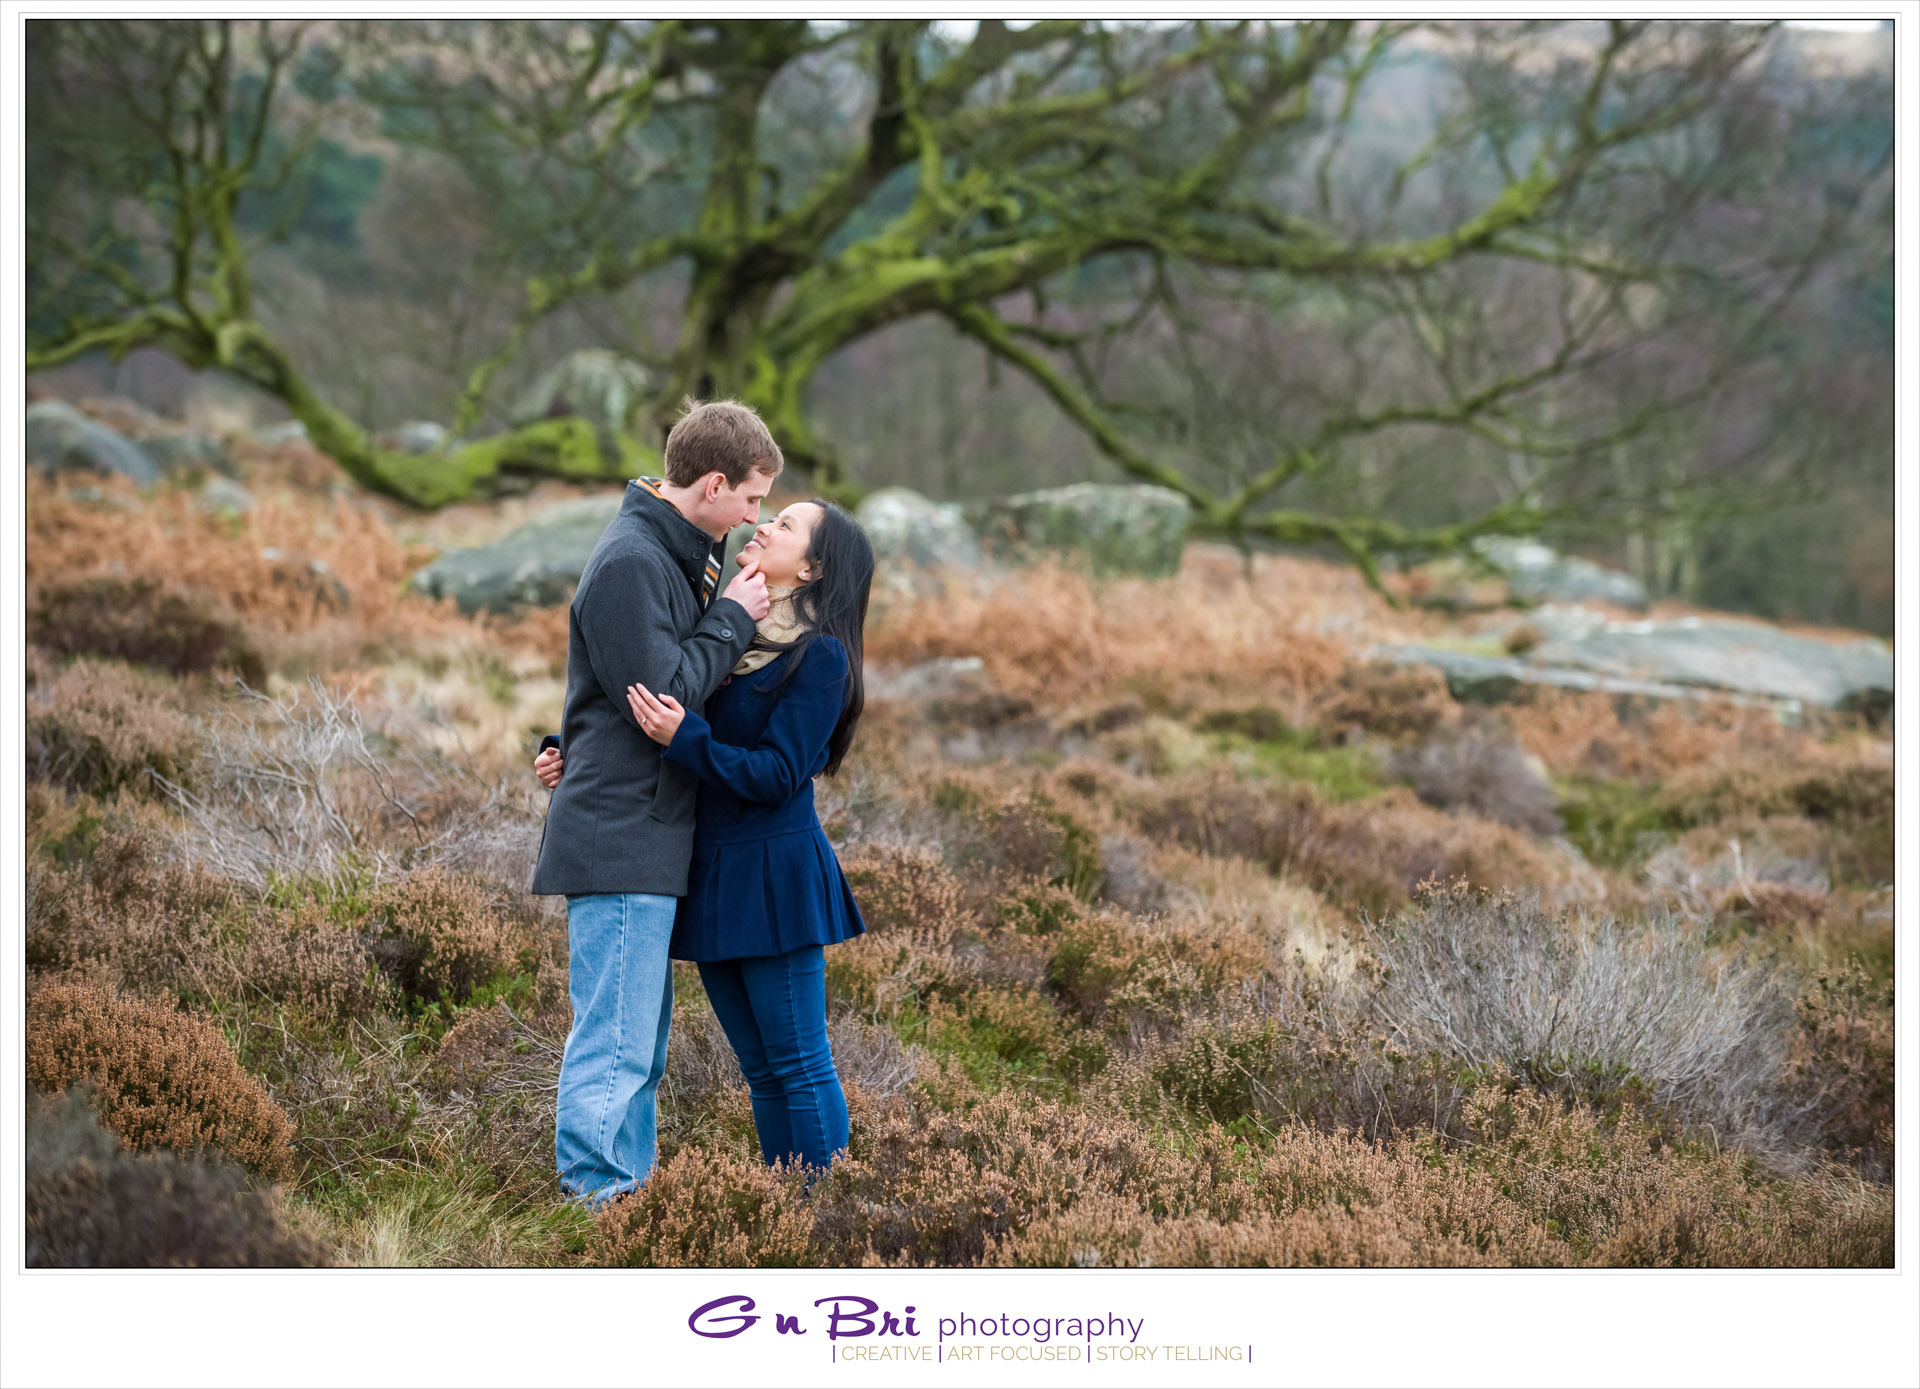 Peak District Pre-wedding Session | Christabella & Andy | Sneak Peek